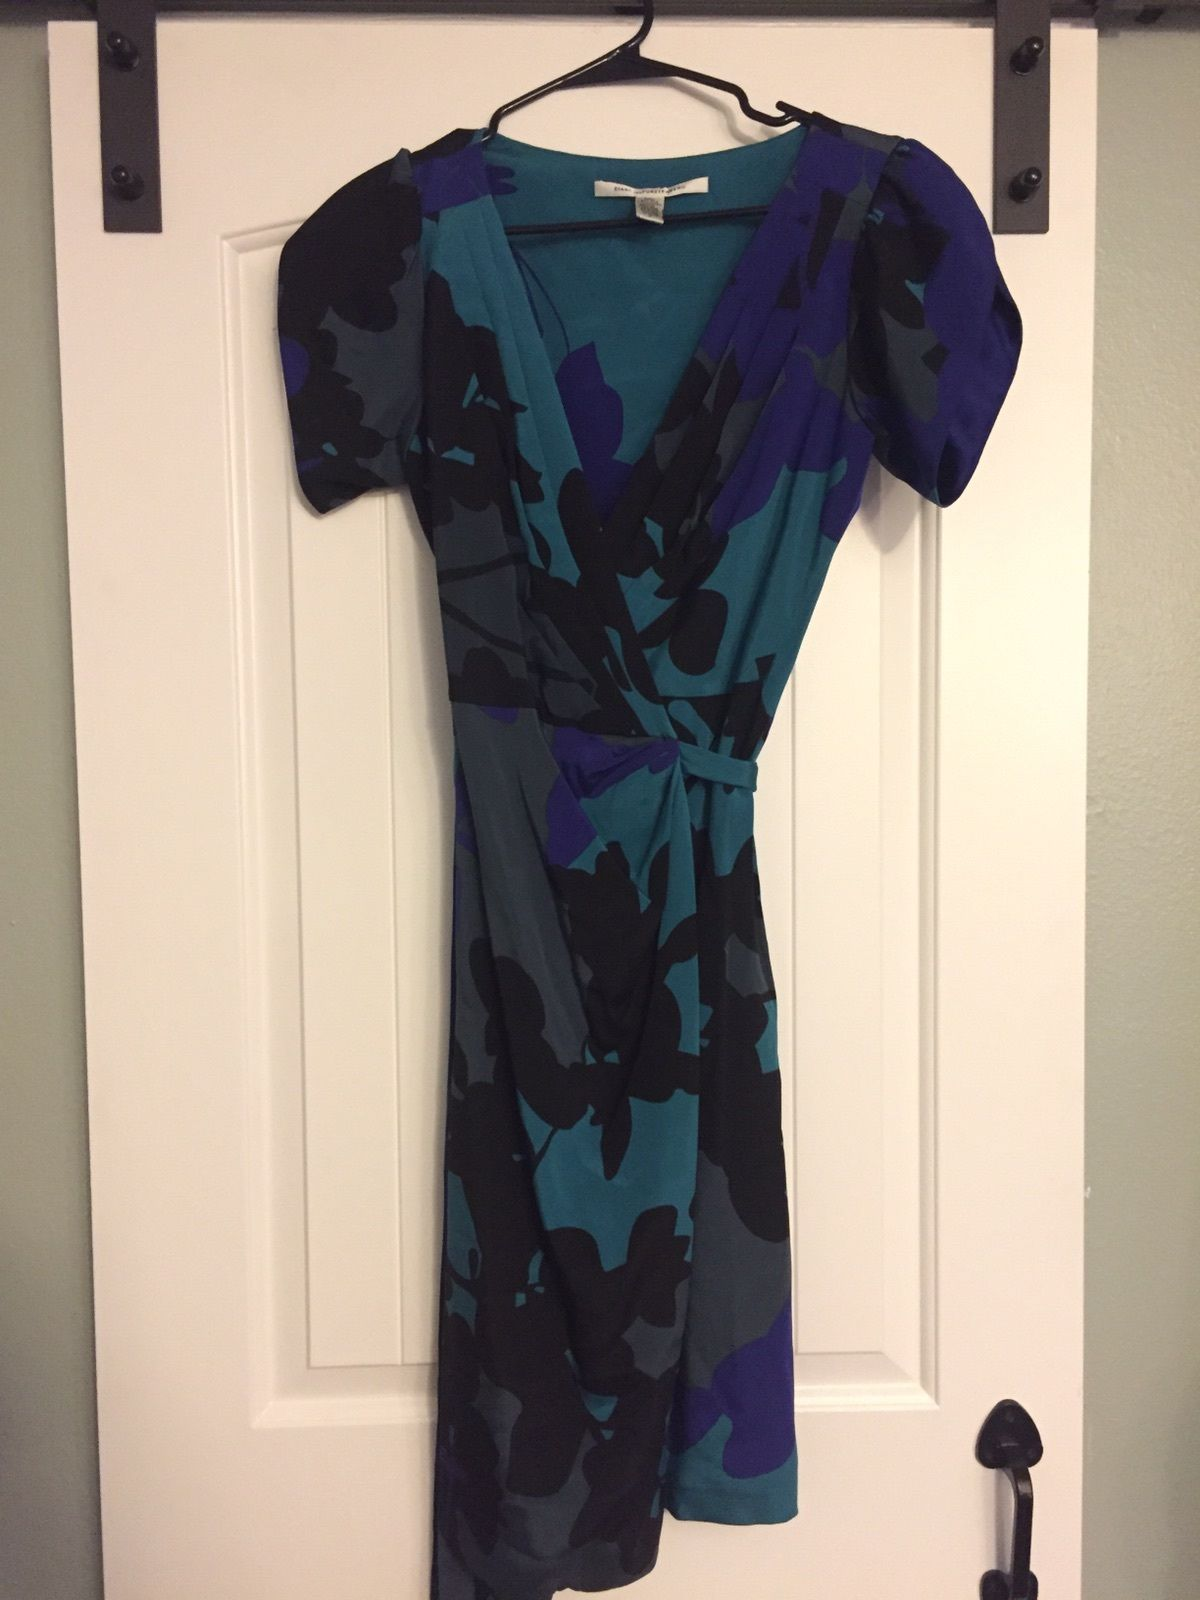 Diane von Furstenberg Silk Wrap Dress Bought: $8.99 (Goodwill) Listed: $40 Sold: $35 Profit: $26.01 (minus eBay's cut)